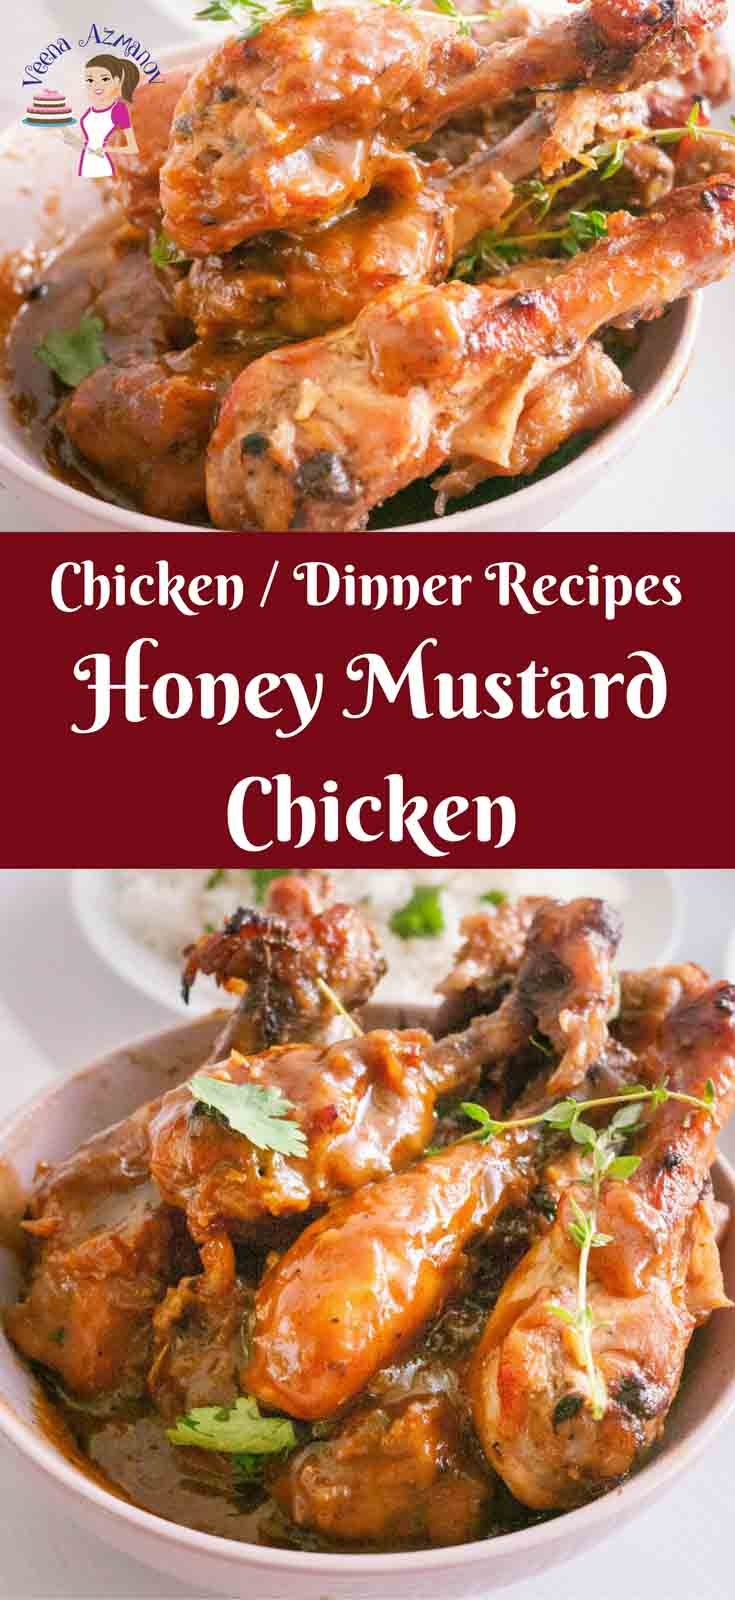 This classic honey mustard chicken is as easy as it can get. The chicken is marinated with a creamy honey mustard marinade then baked until golden. The resulting juices are thick and creamy. Serve it with a bowl of hot steaming rice or good old crusty bread.